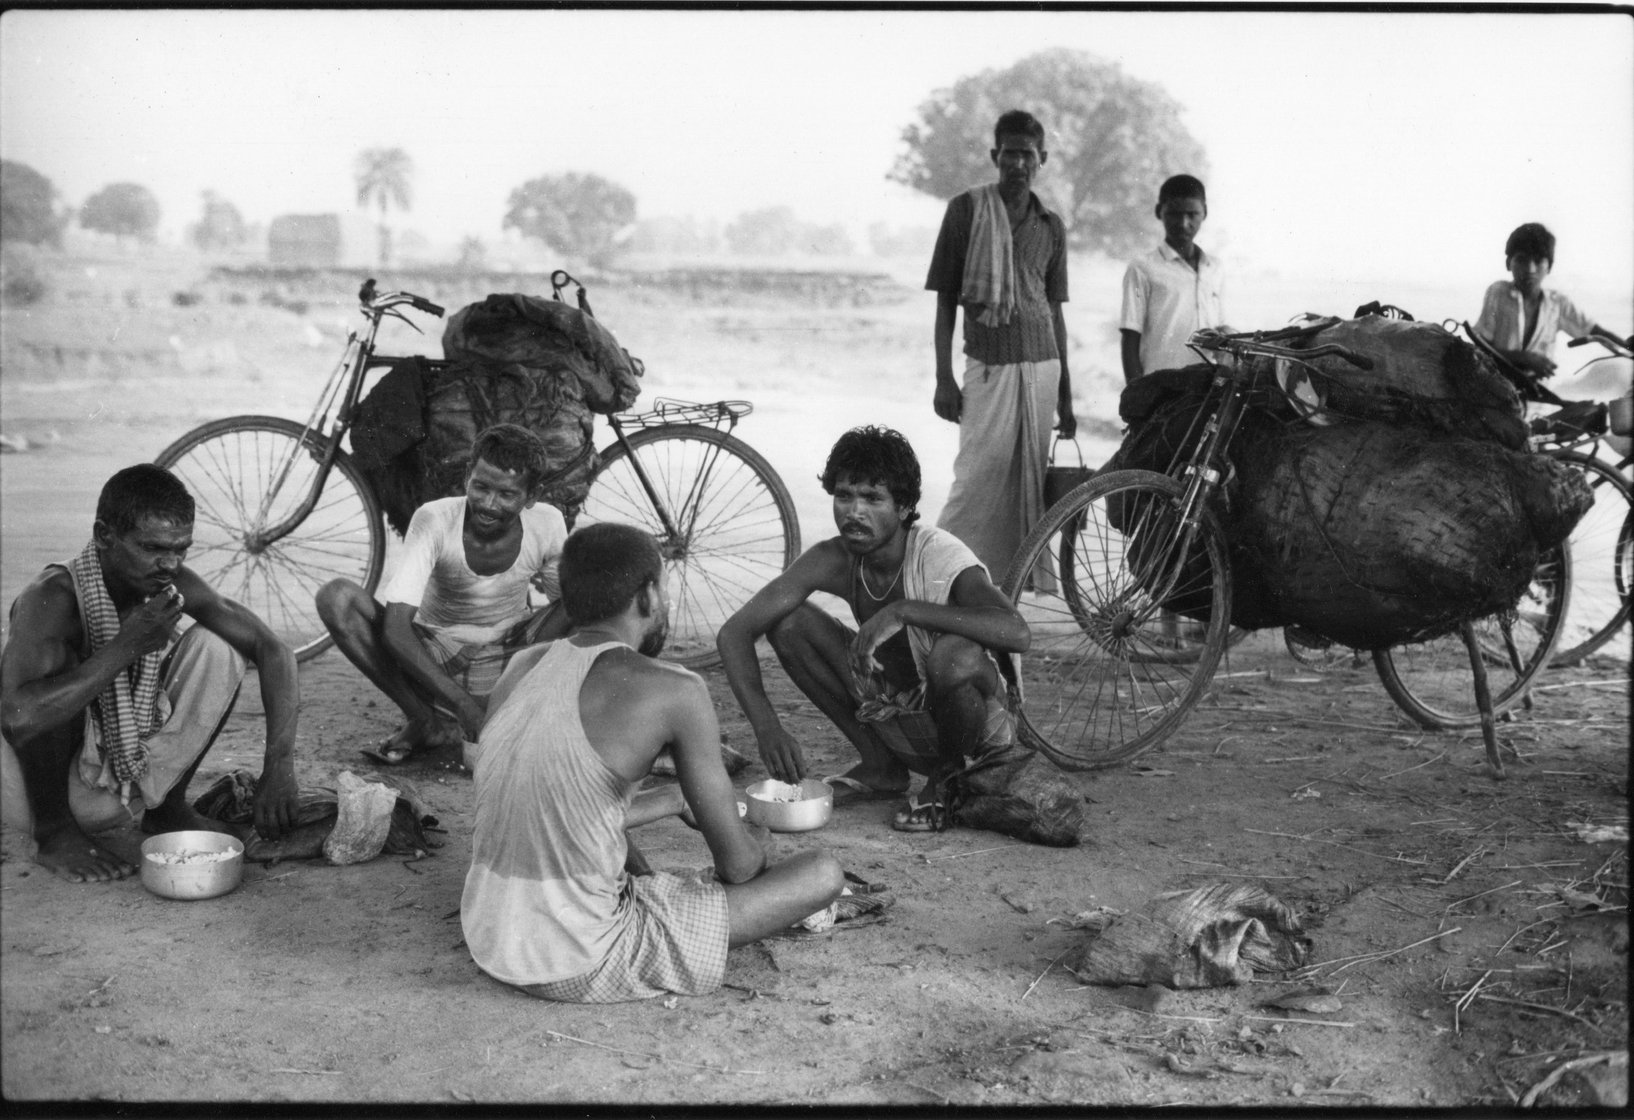 Group of men from different castes eating lunch beside their coal laden cycles